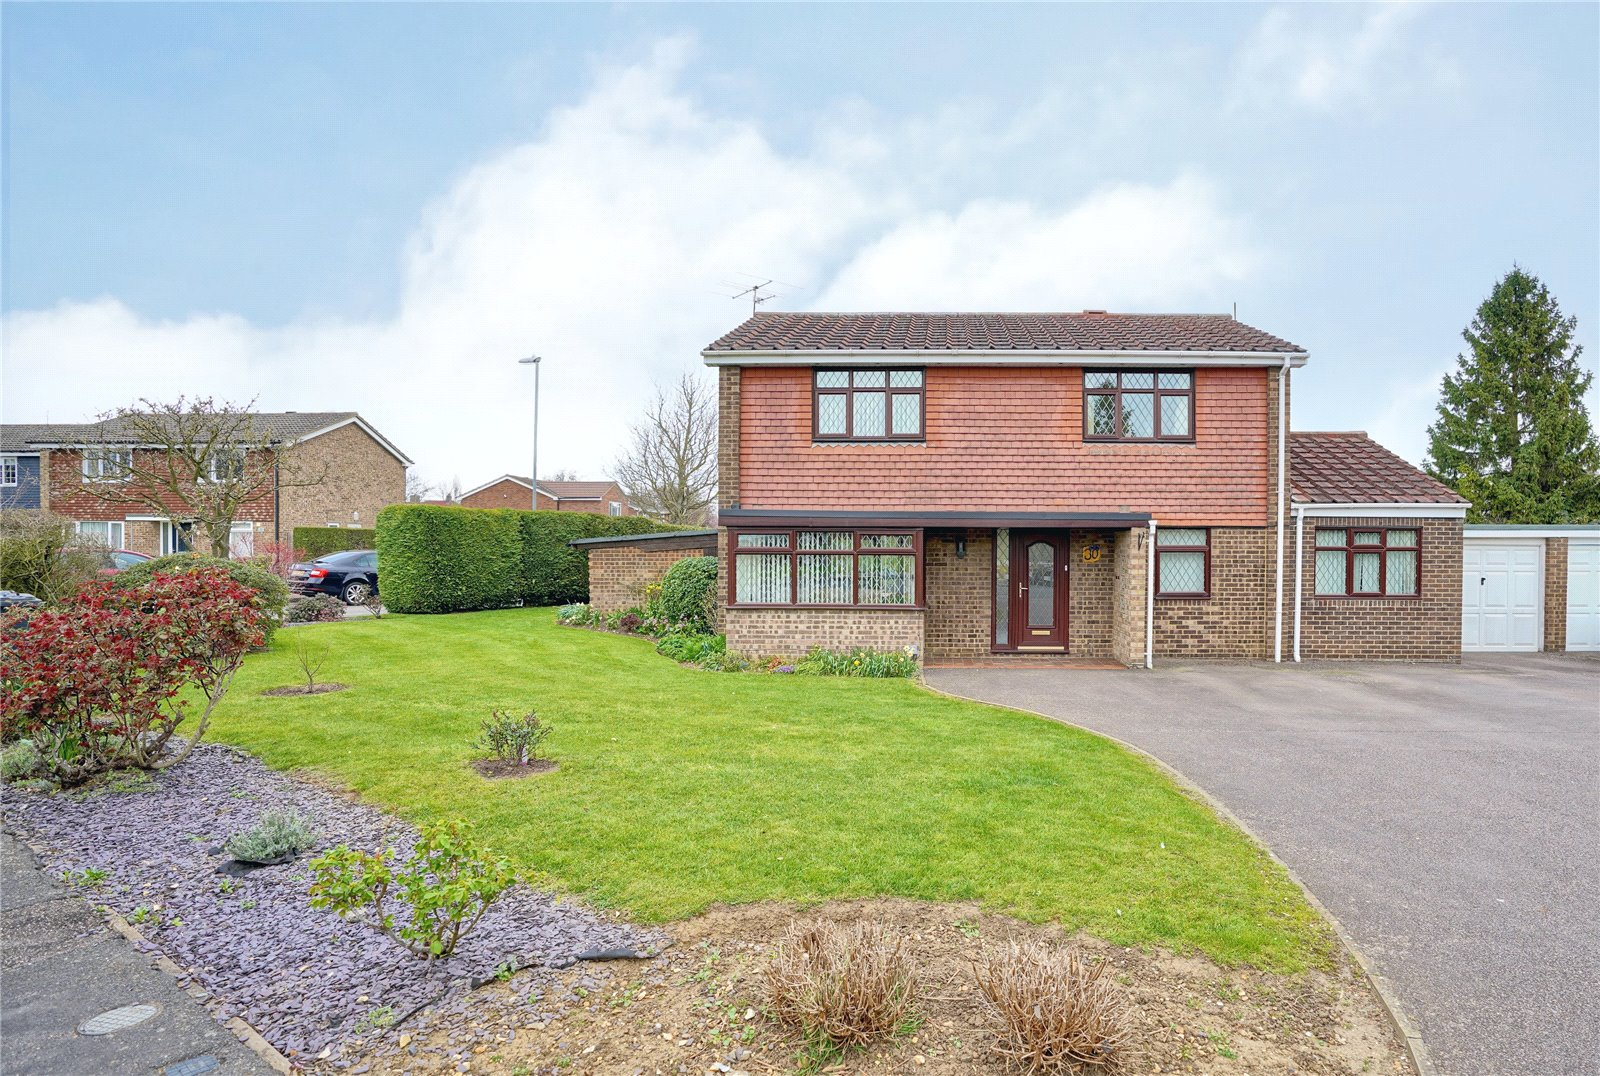 4 bed house for sale in Eaton Ford, PE19 7LE - Property Image 1